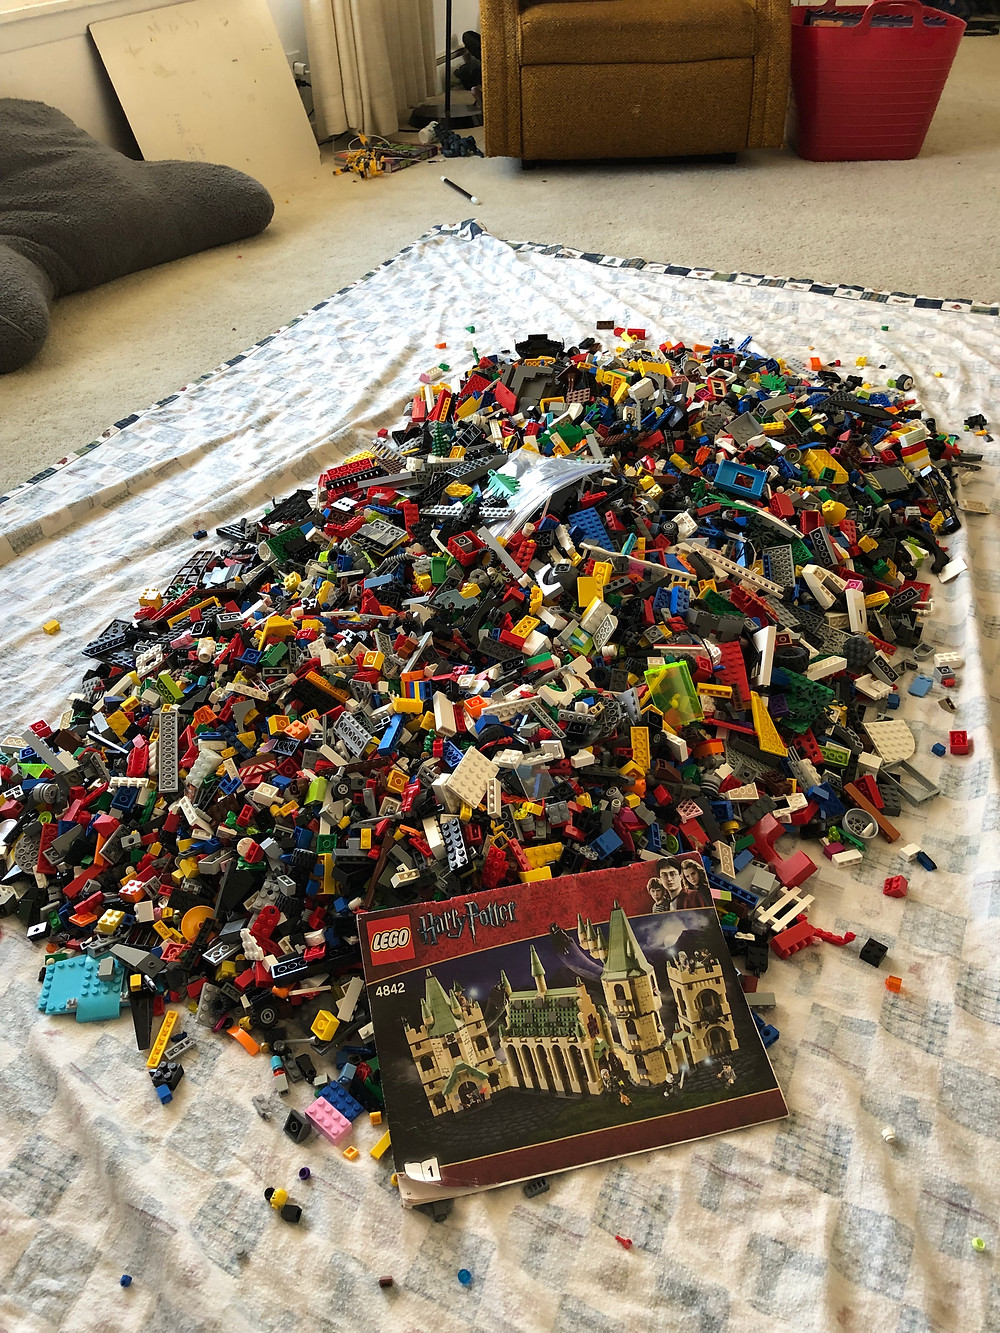 Big pile of LEGO